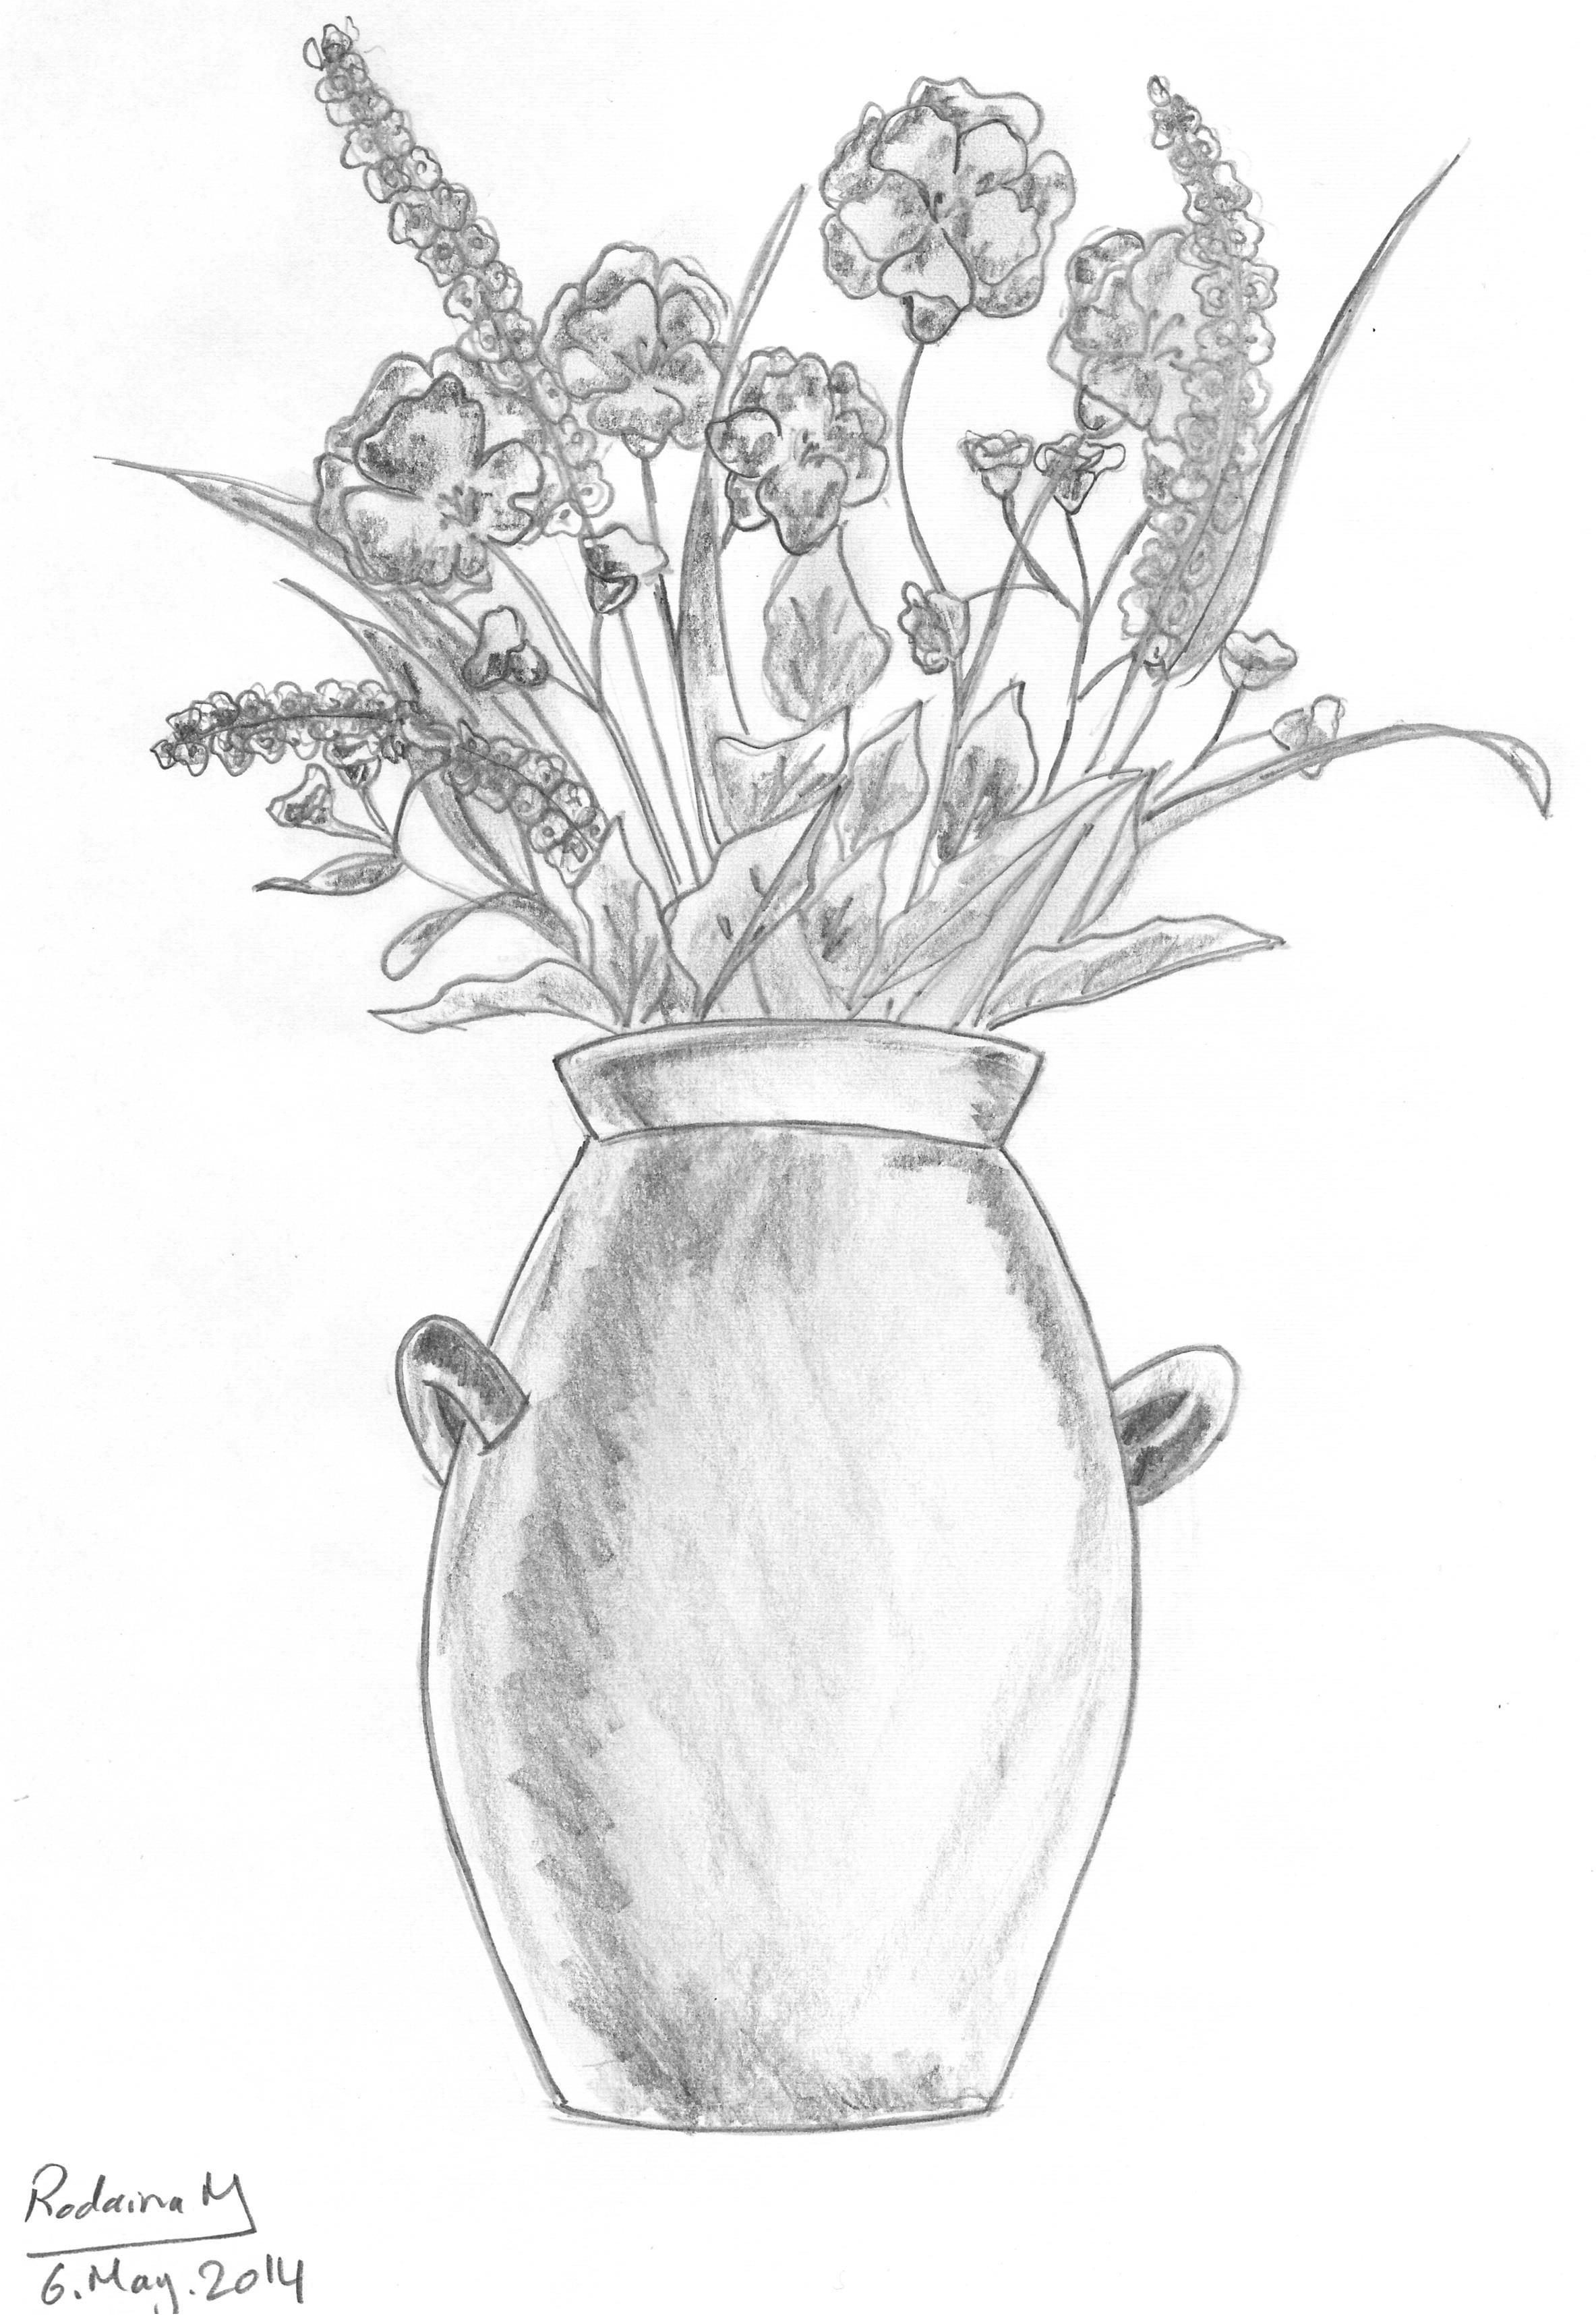 how to draw a vase with flowers step by step how to draw flowers in a vase drawingforallnet to draw step flowers with vase step how a by